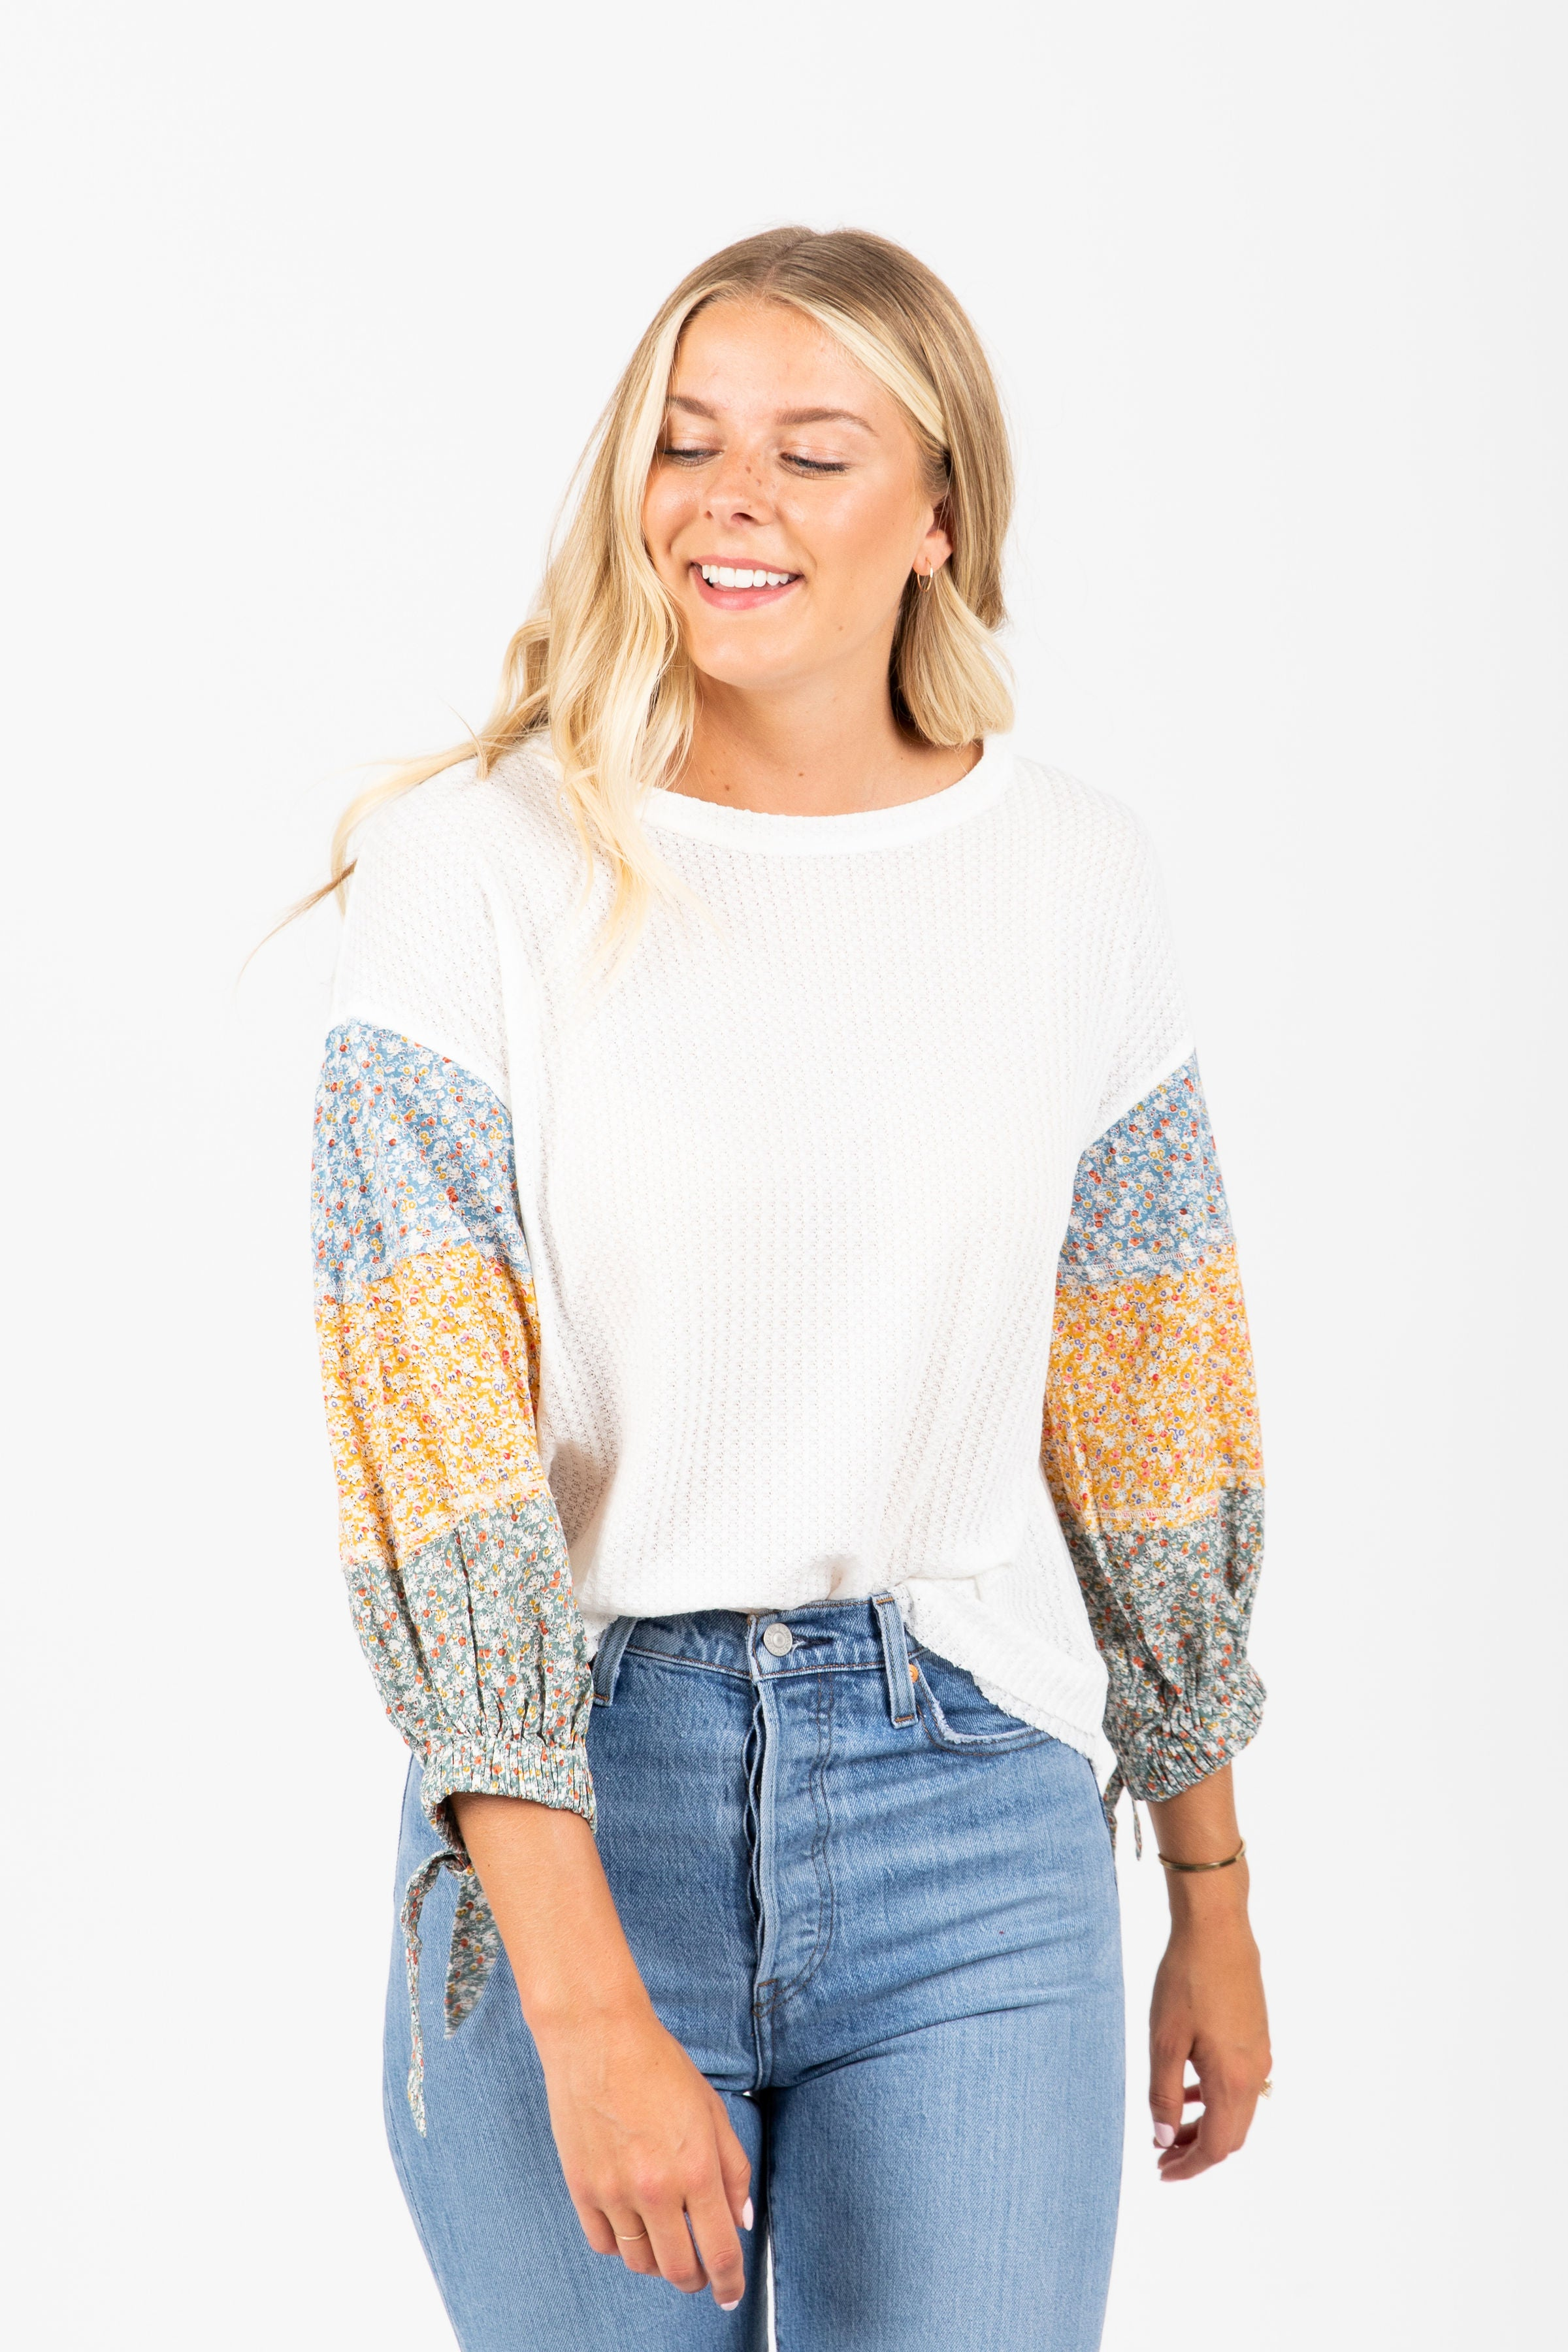 The Lalo Floral Contrast Blouse in White